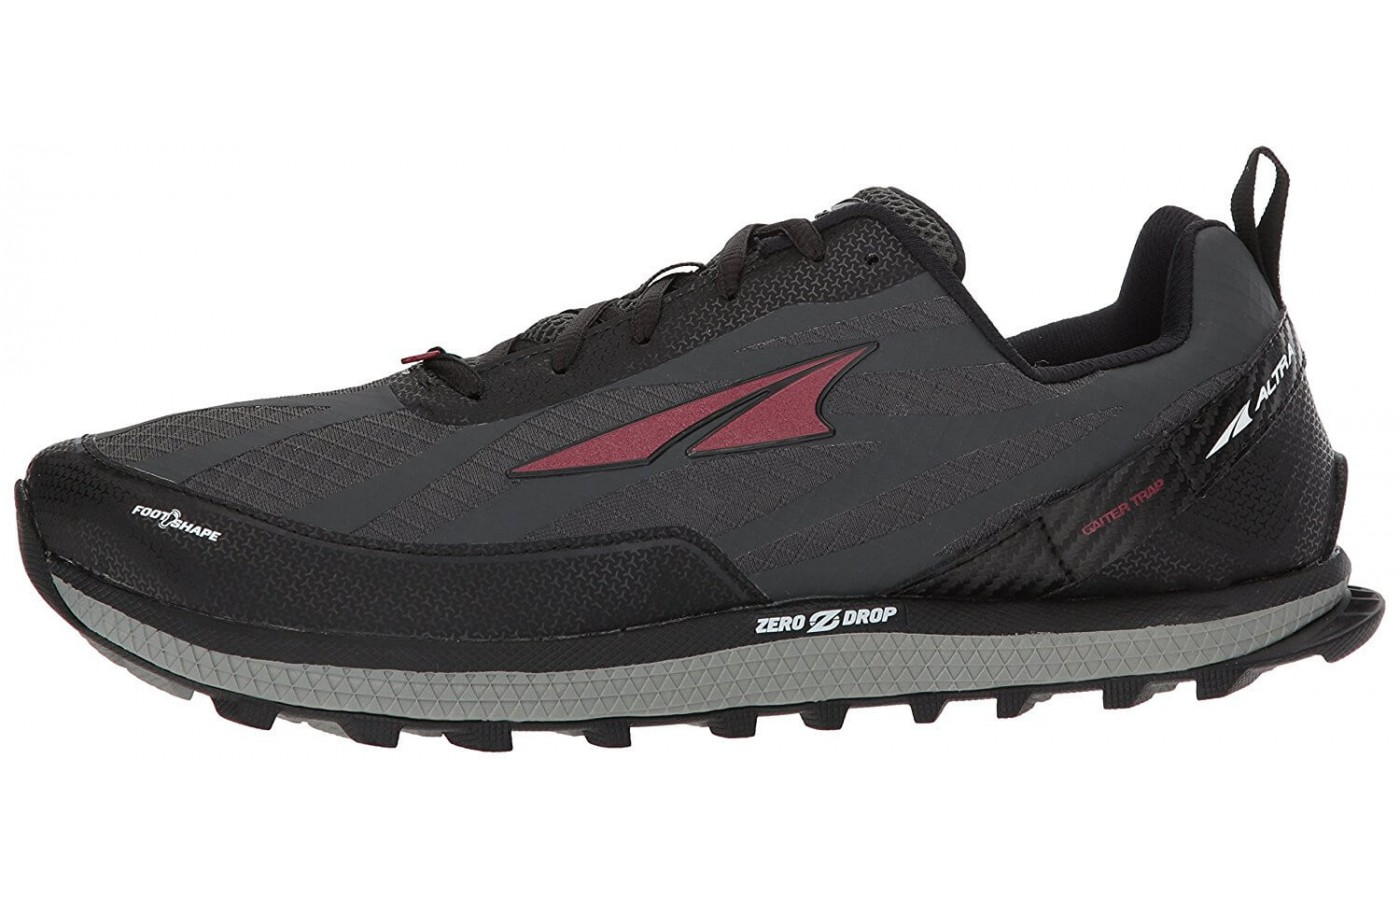 While not the most stylish set of trail shoes, the Altra Superior 3.5 is still visually appealing.